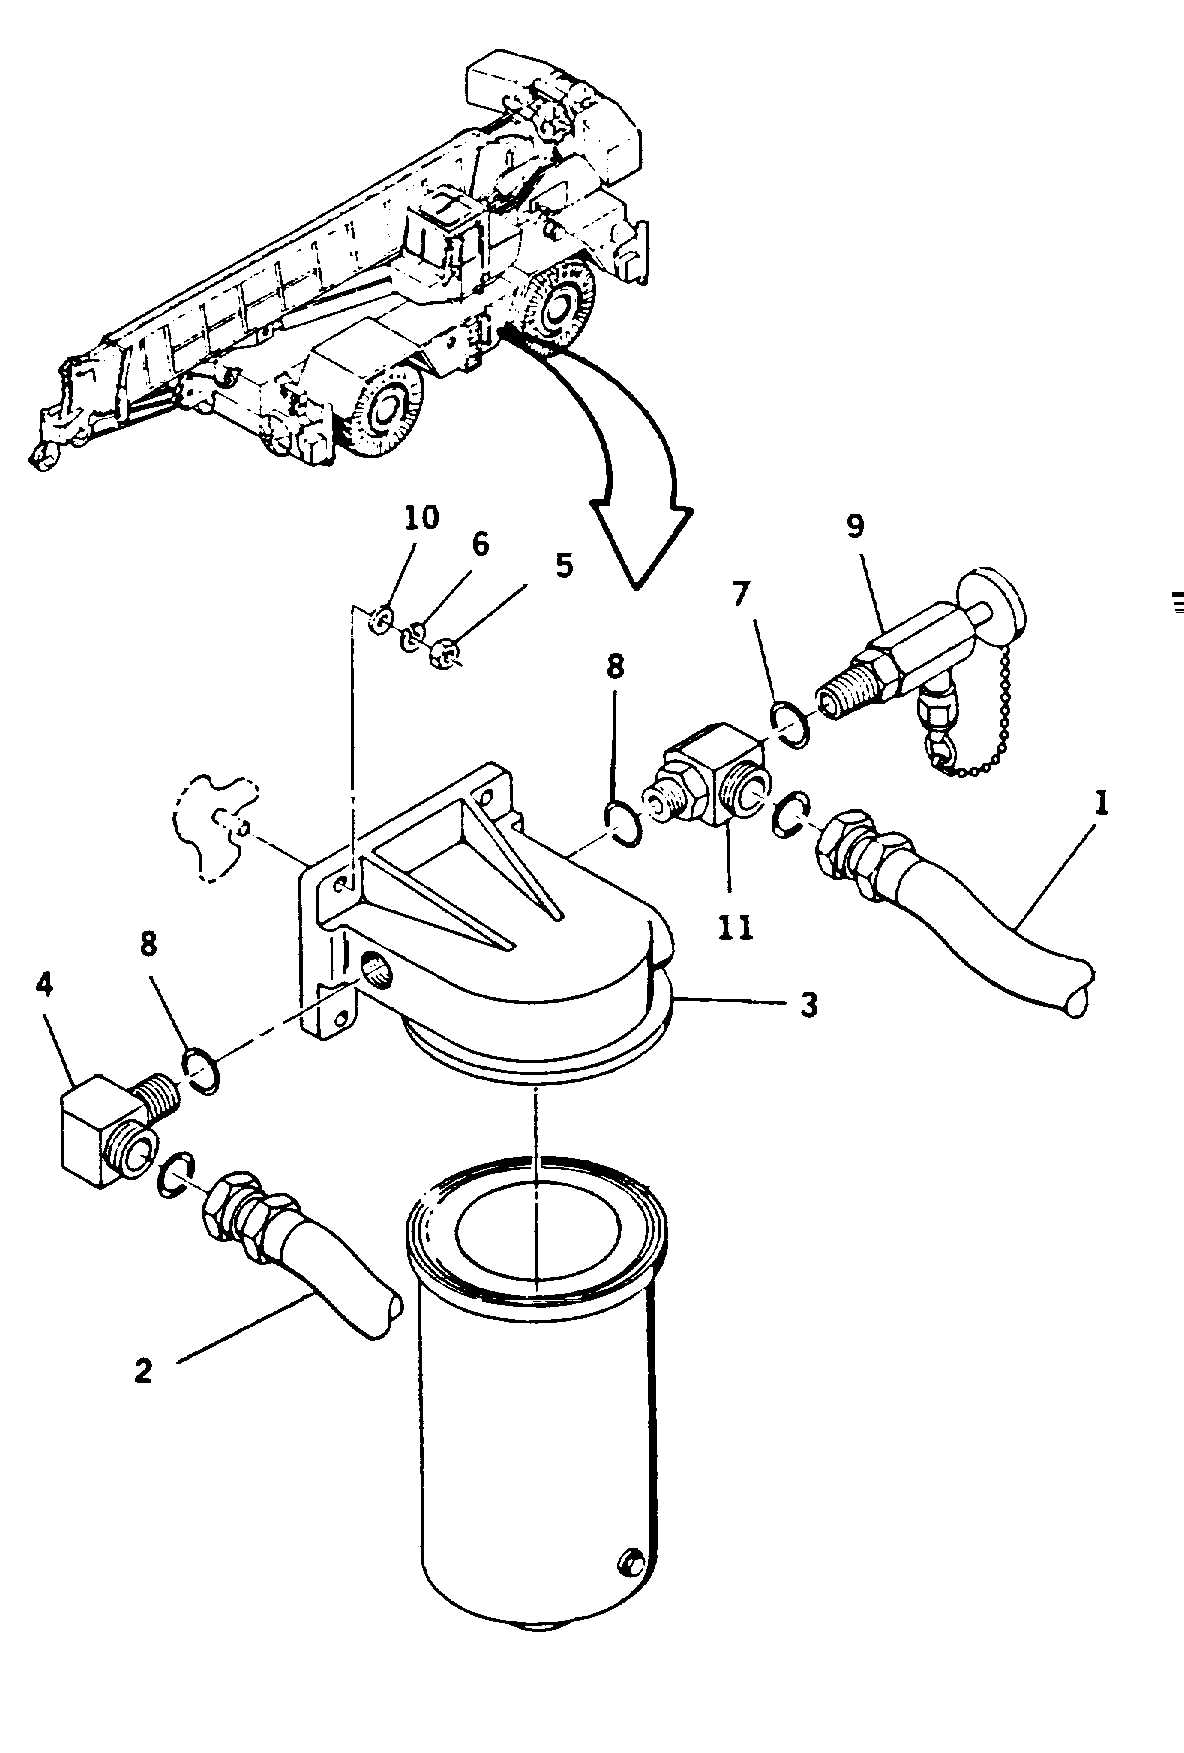 racor fuel water separator instructions